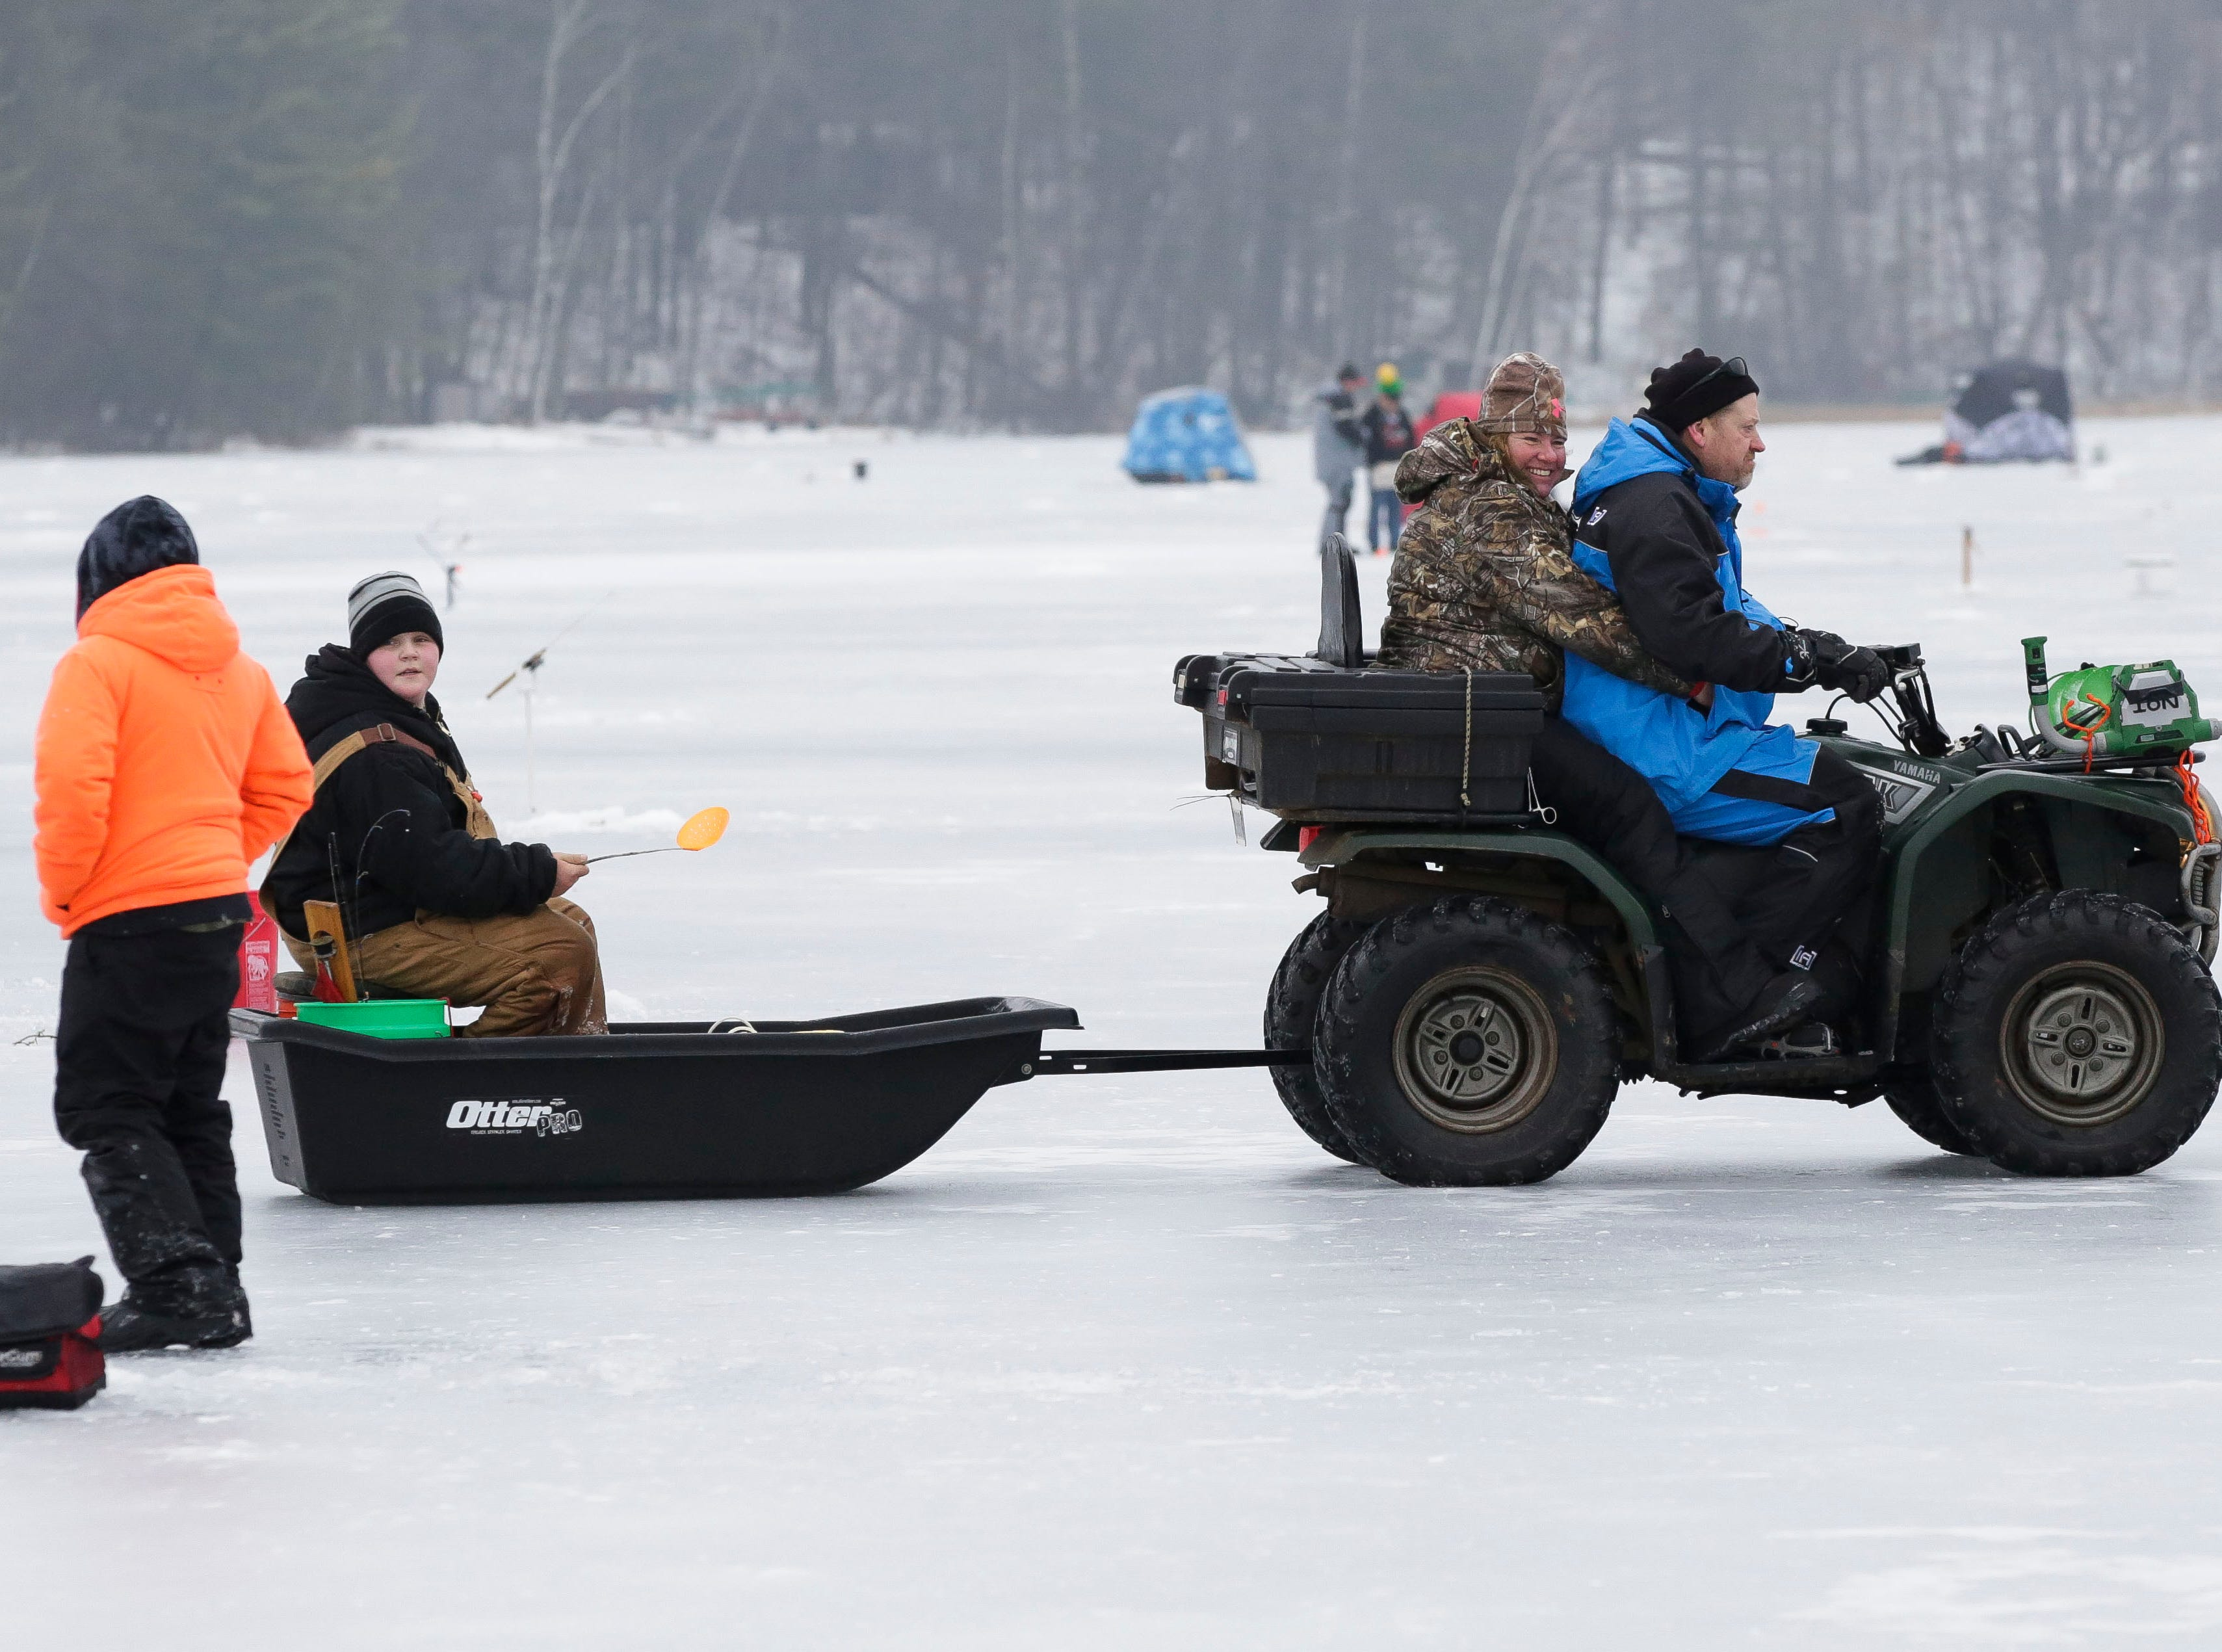 A group of ice fishers haul equipment to shore on Saturday, January 12, 2019, during the Rosholt Blizzard Busters Fisheree at Lake Helen outside Rosholt, Wis.Tork Mason/USA TODAY NETWORK-Wisconsin